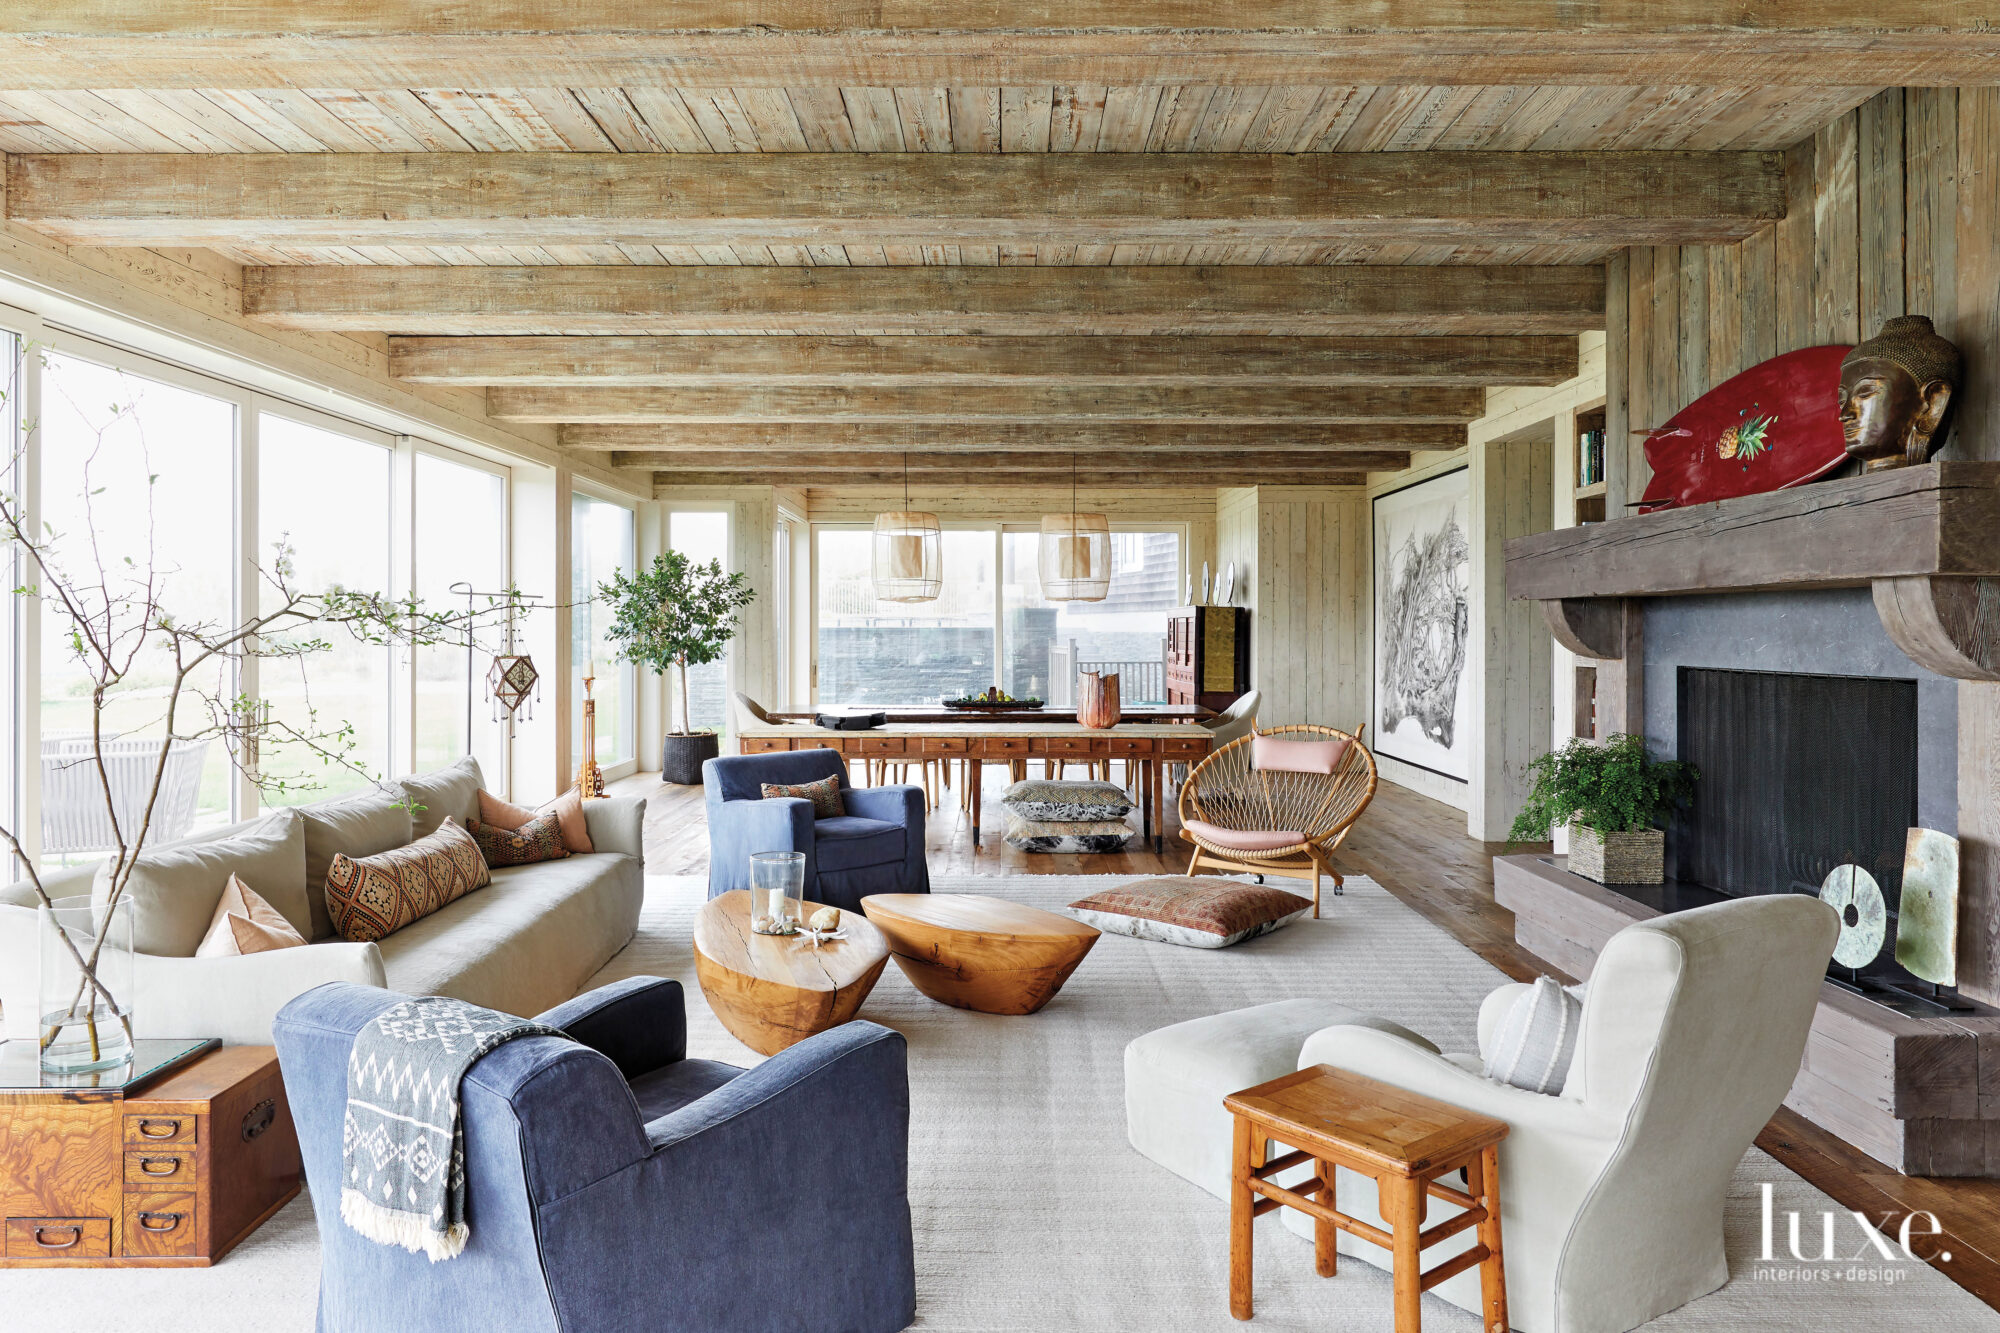 Beachy wood planks define the cieling in the spacious living room